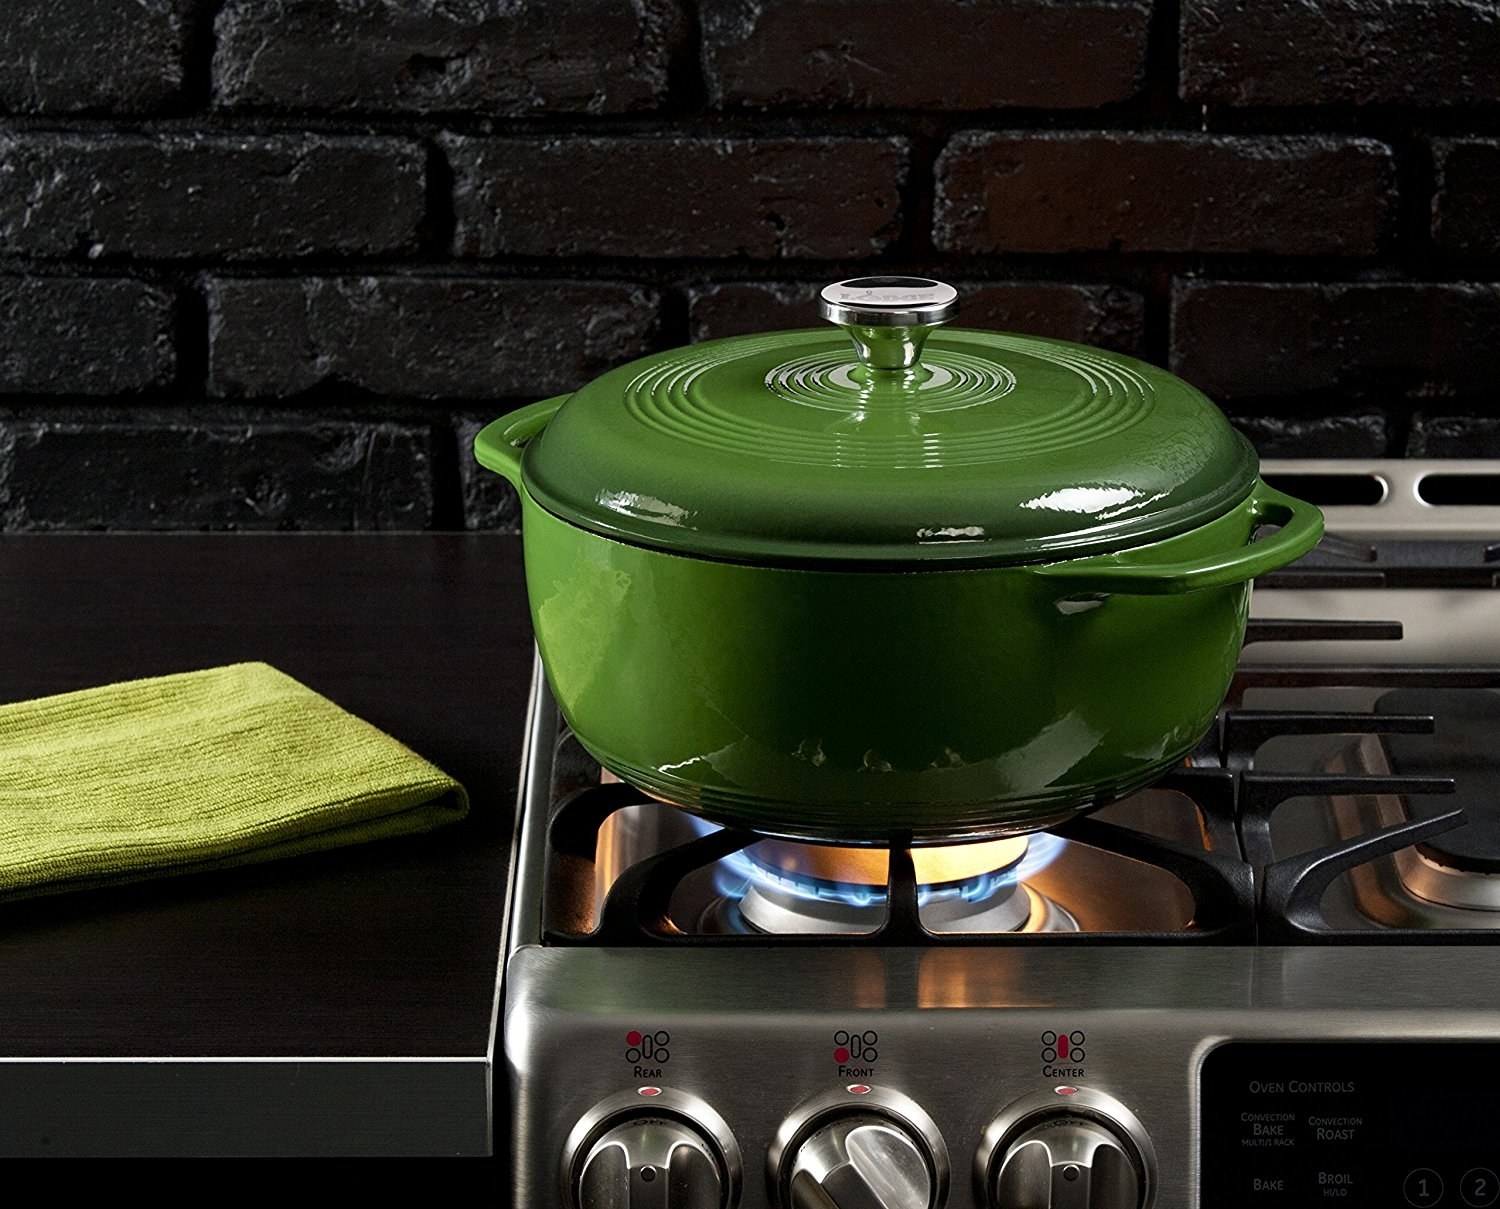 An action shot of the cast iron pot cooking food over an open-flame stovetop